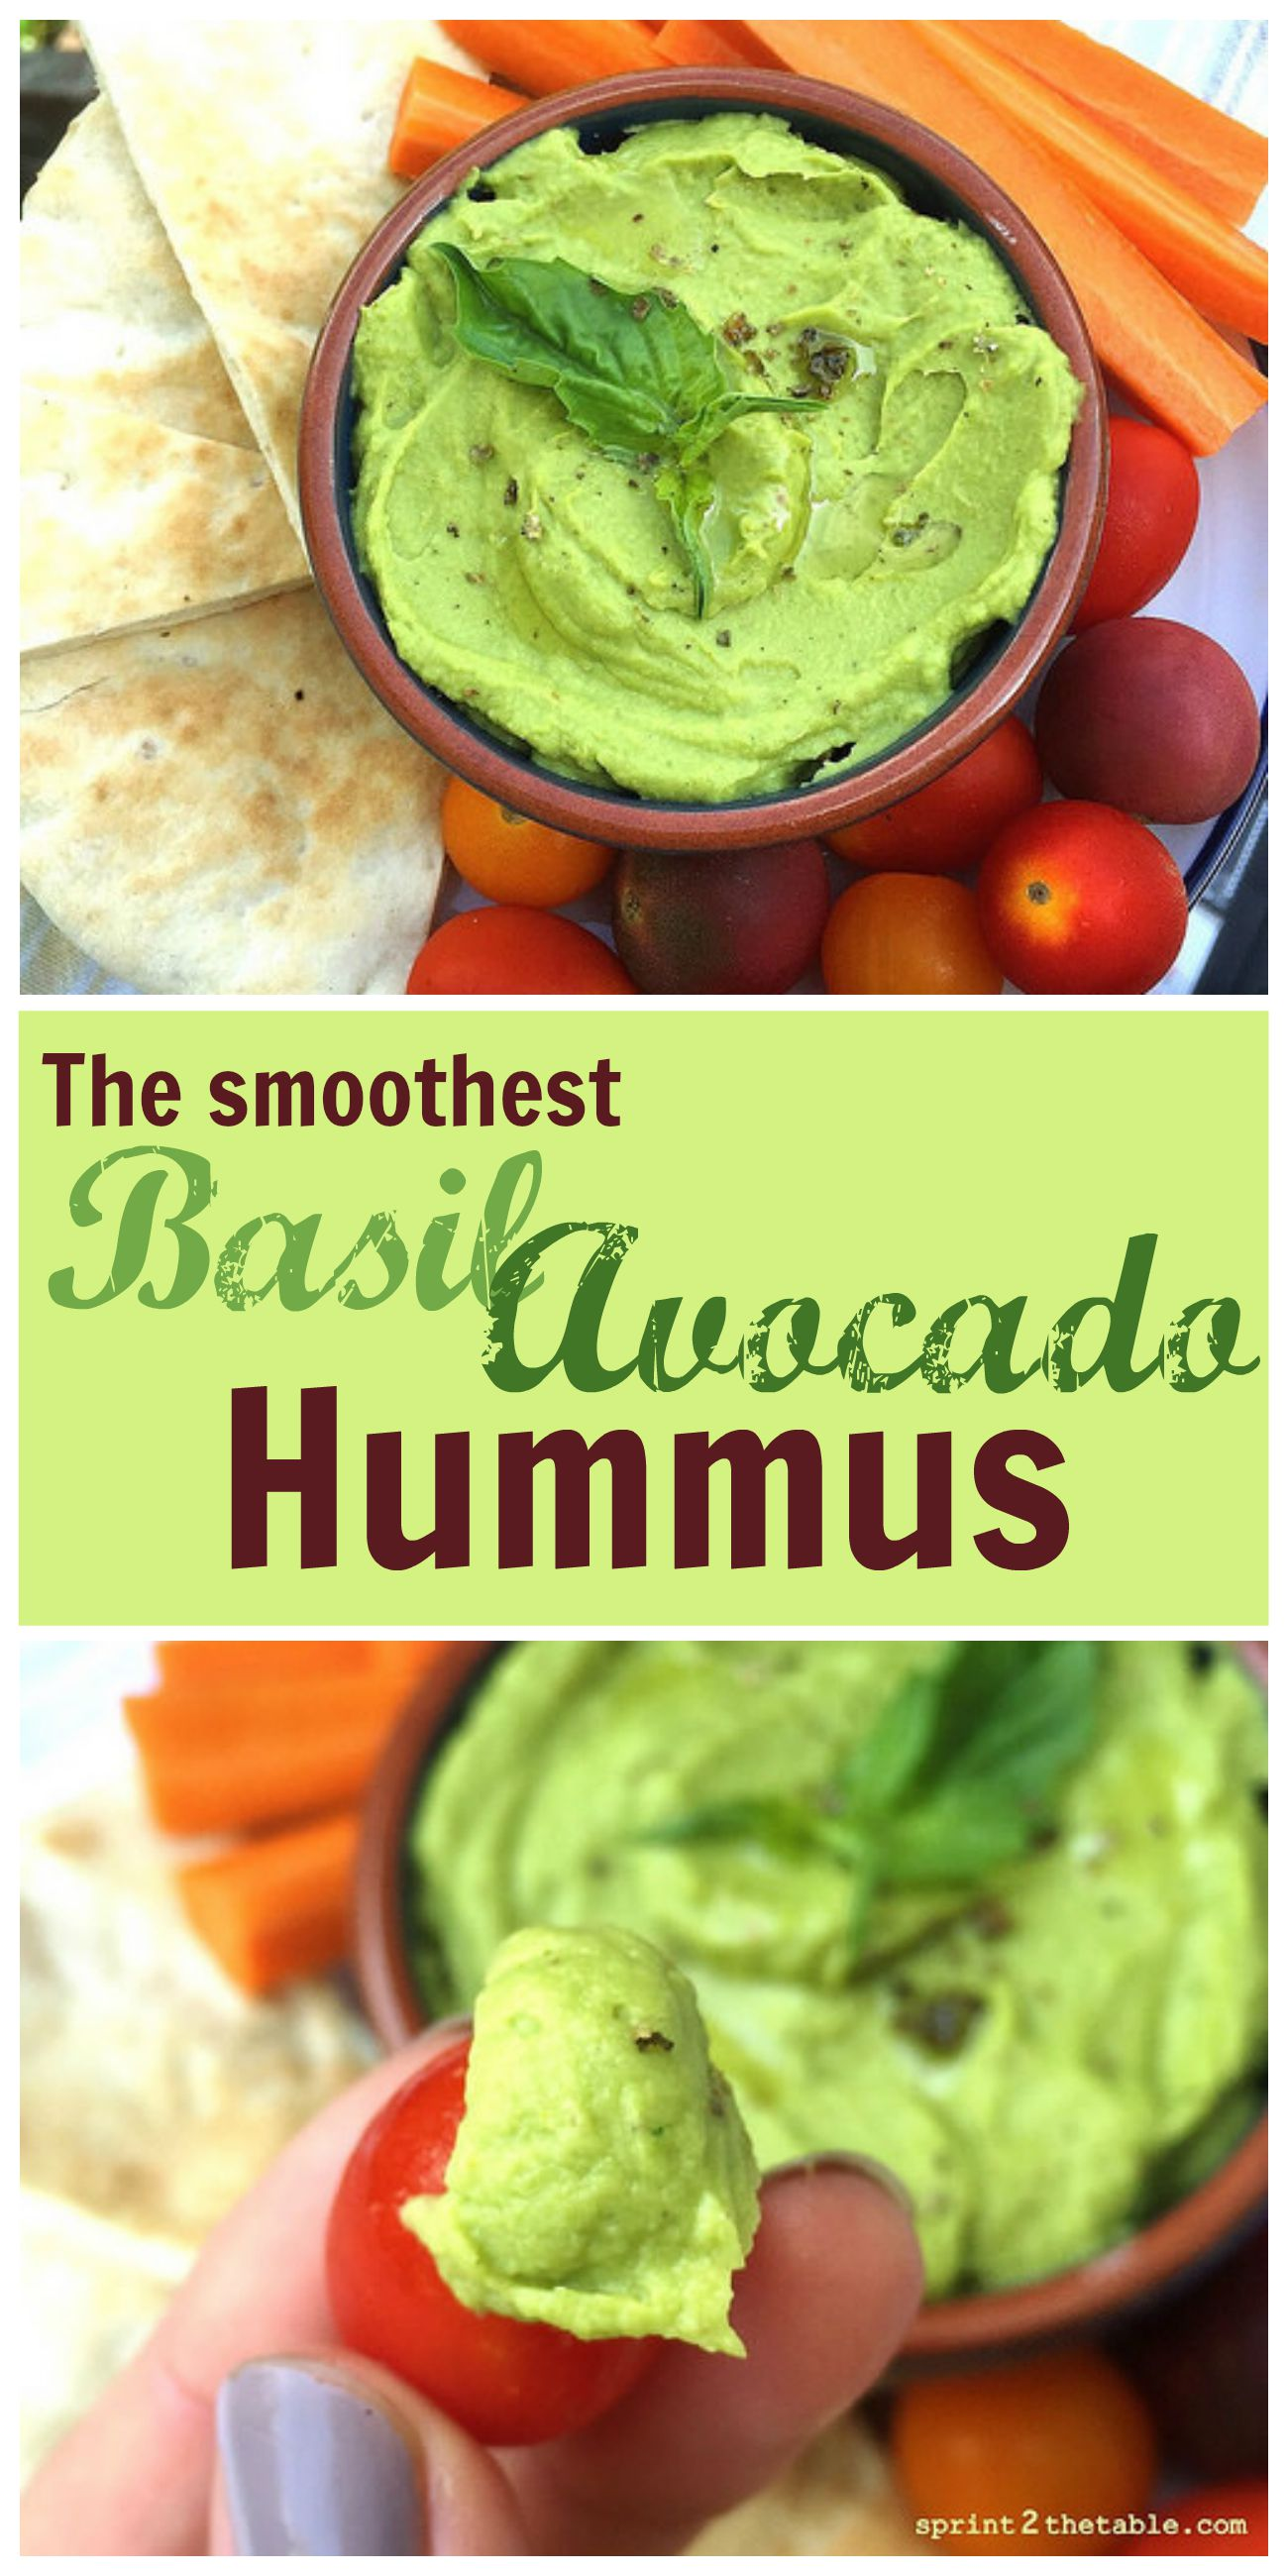 The smoothest Basil Avocado Hummus